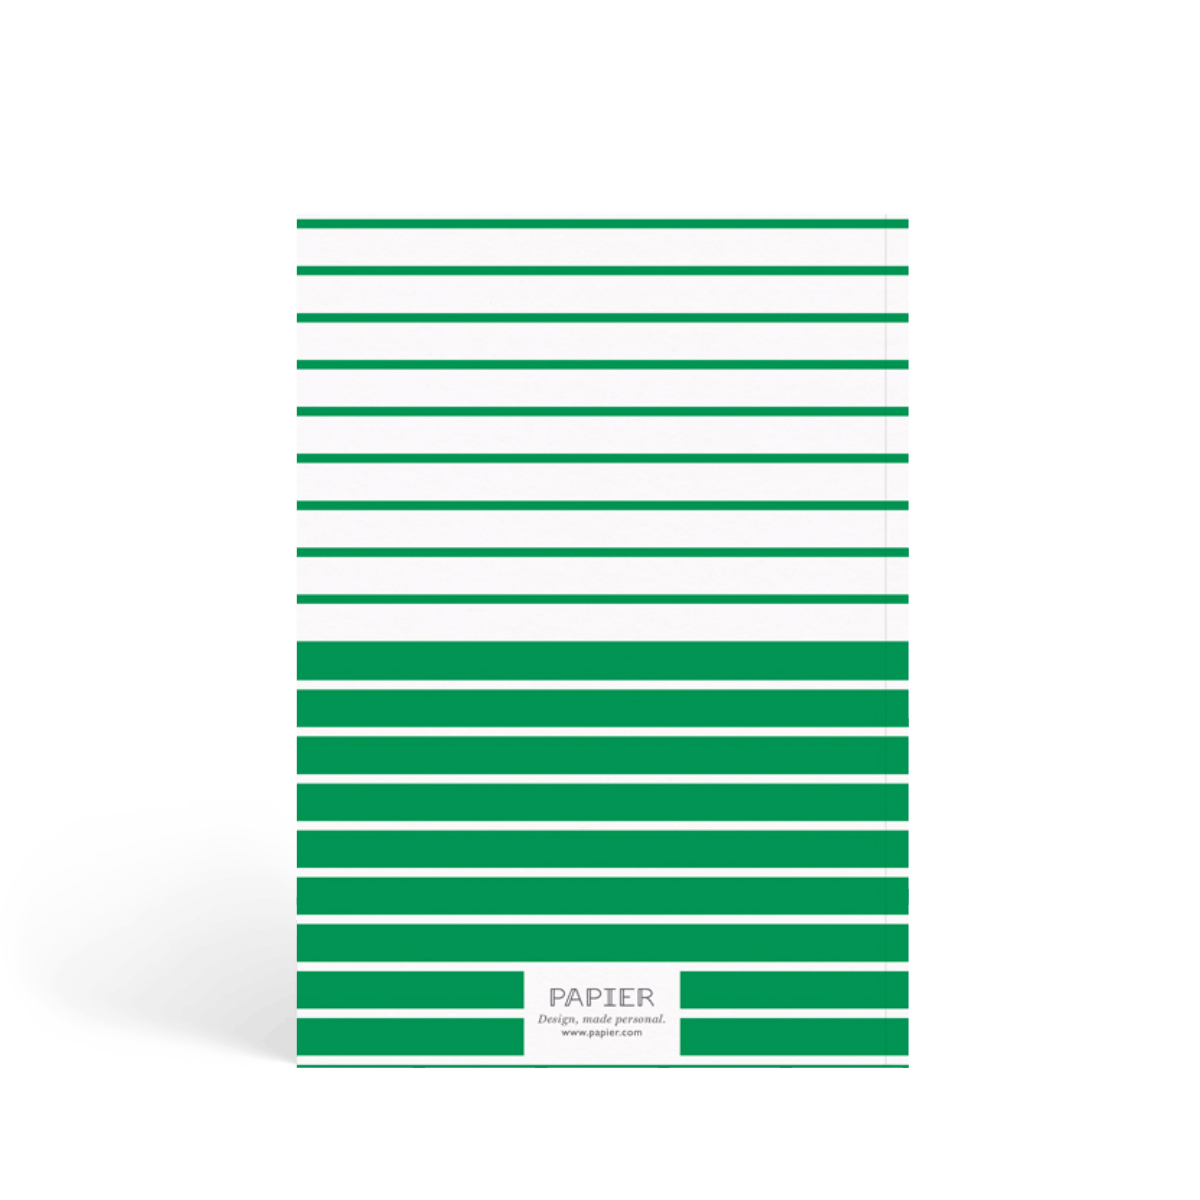 Https%3a%2f%2fwww.papier.com%2fproduct image%2f13930%2f5%2fdouble stripe 3575 back 1479462033.png?ixlib=rb 1.1